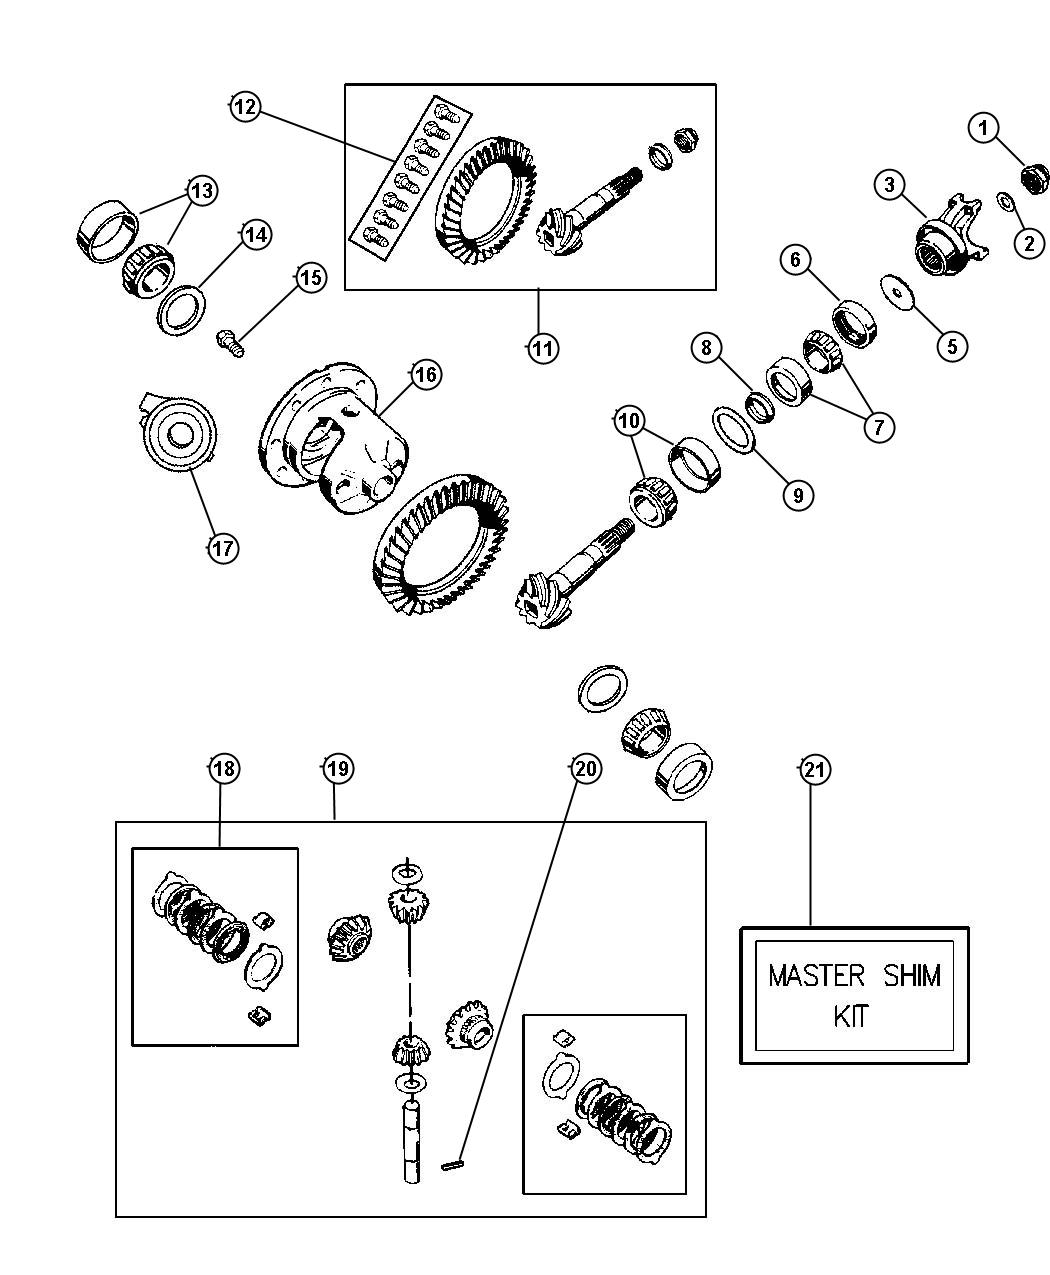 jeep wrangler steering column diagram 2002 vw jetta tdi radio wiring 87 front axle imageresizertool com